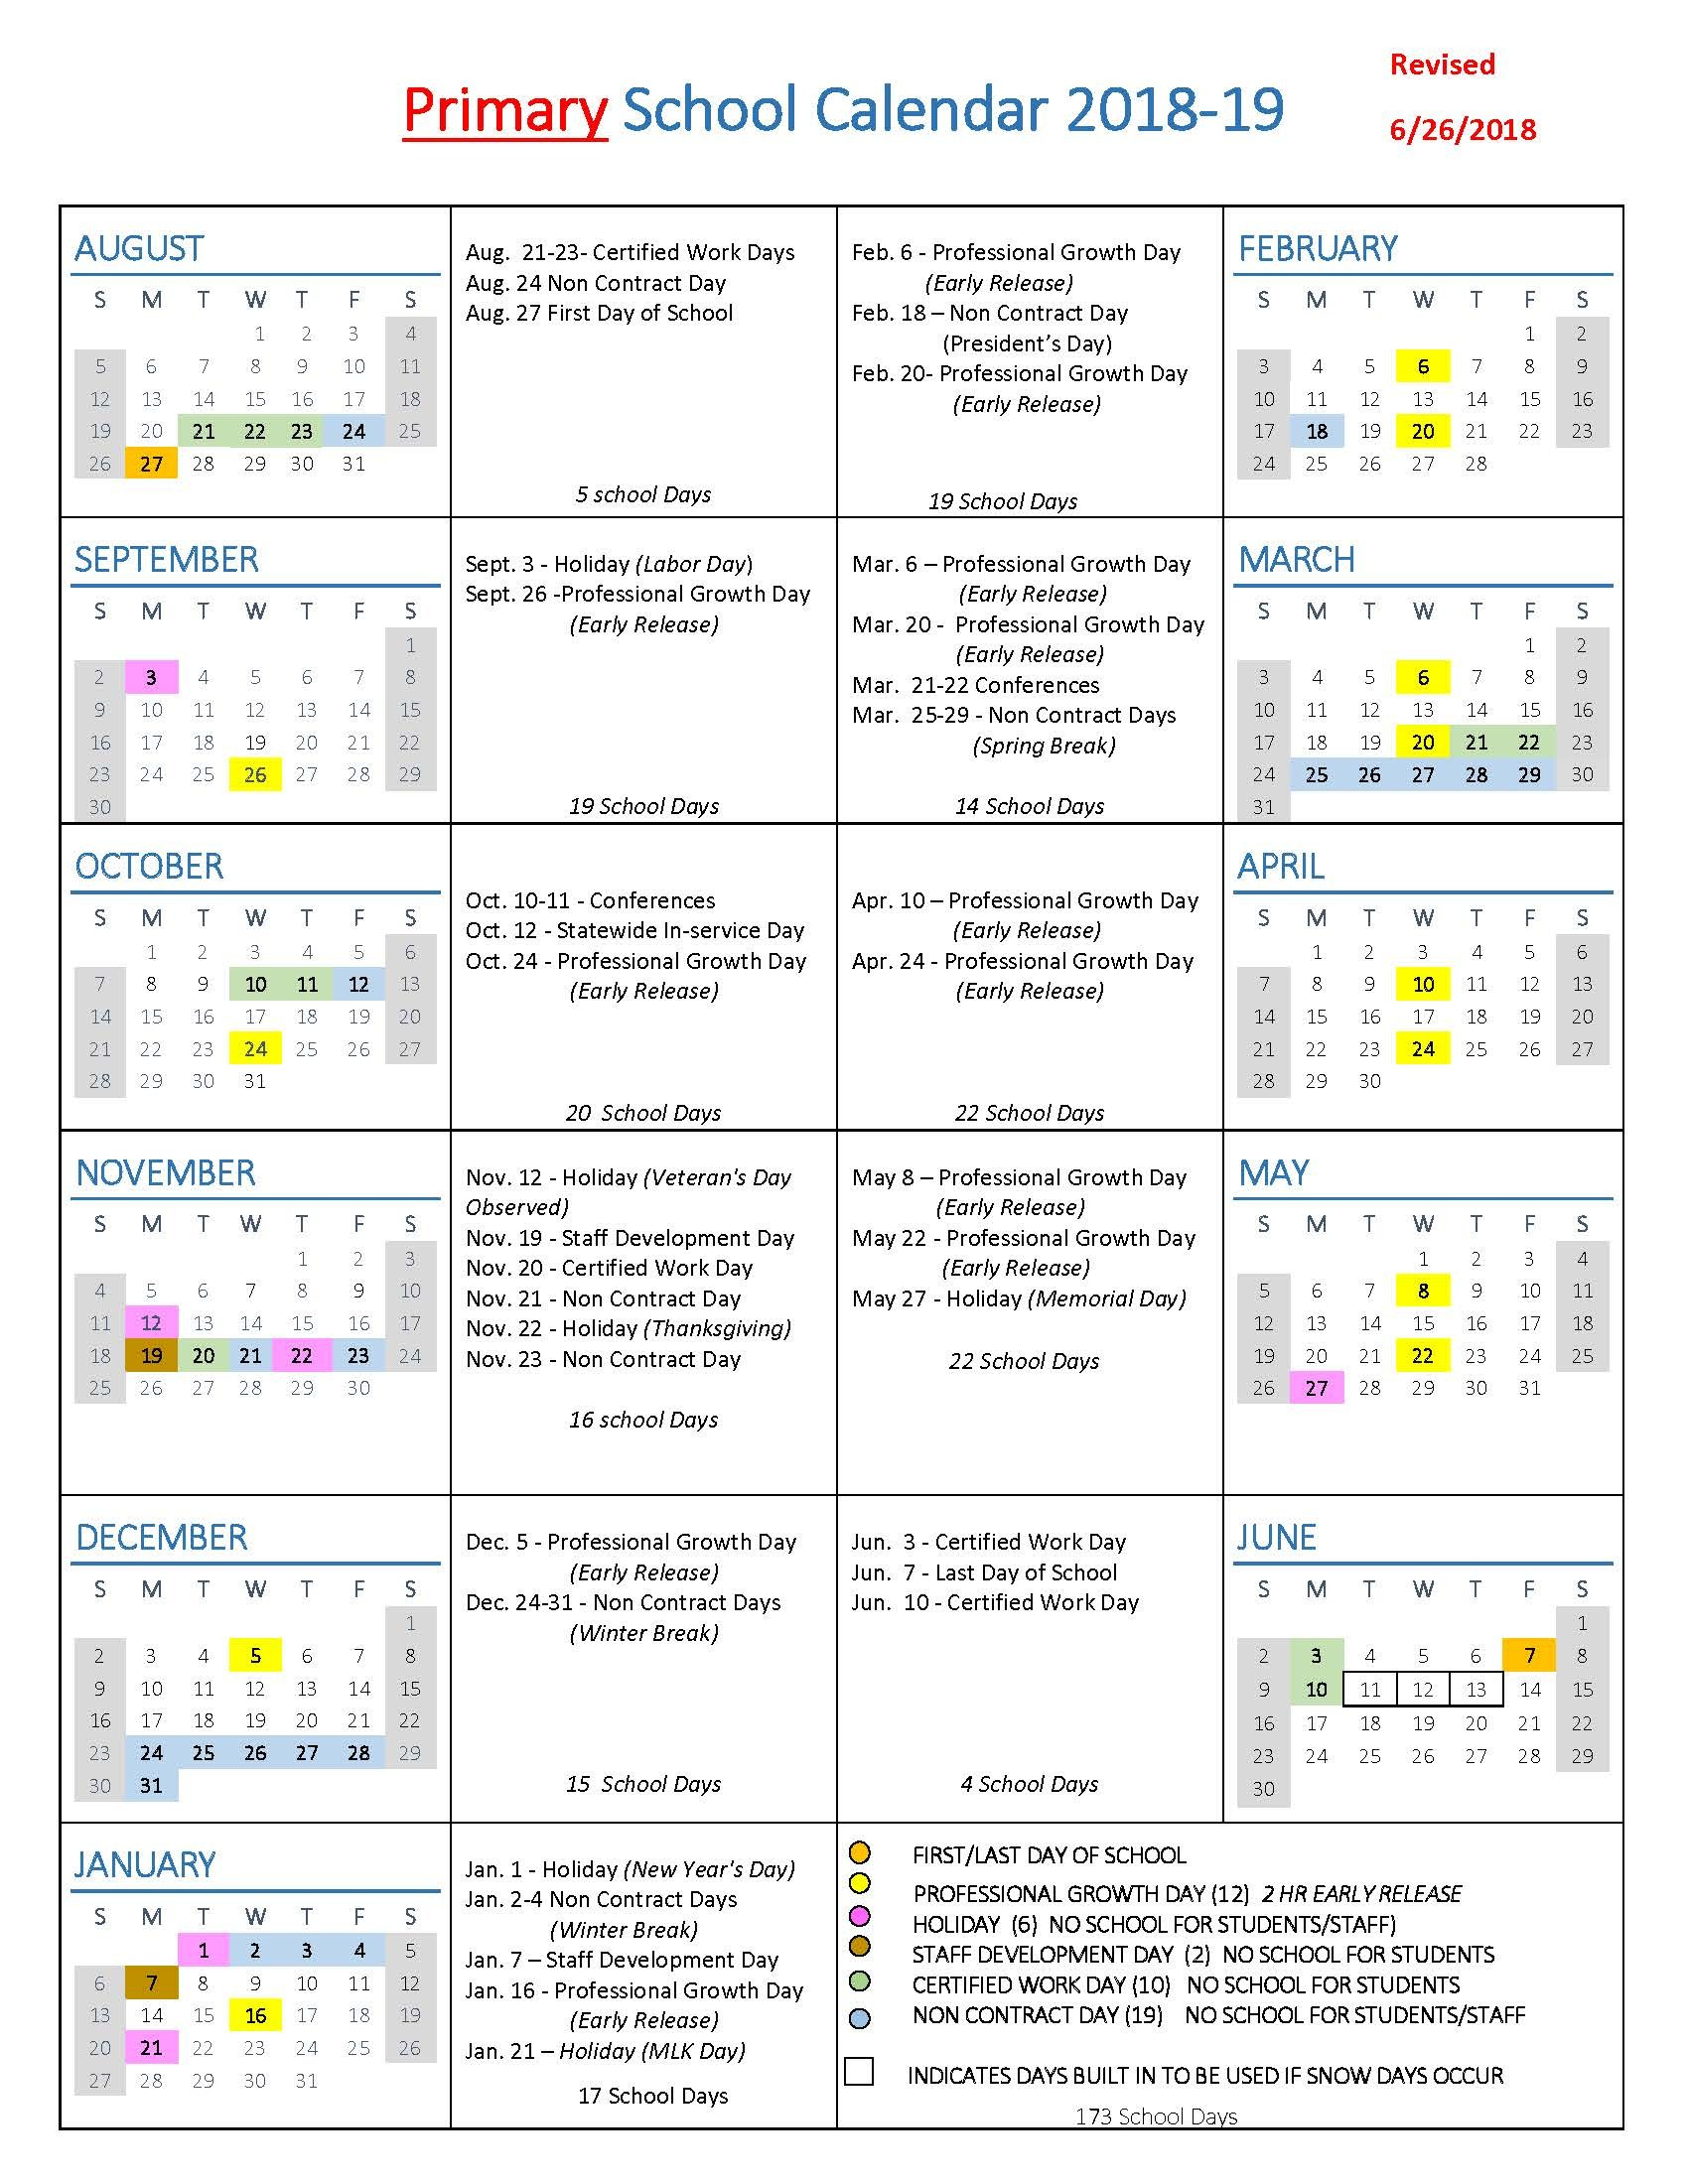 Gujarati Calendar March 2018 Más Reciente School Year Calendars School Year Calendars Of Gujarati Calendar March 2018 Más Arriba-a-fecha Calendar Maker 2017 Line Calendar Creator Opucukessling